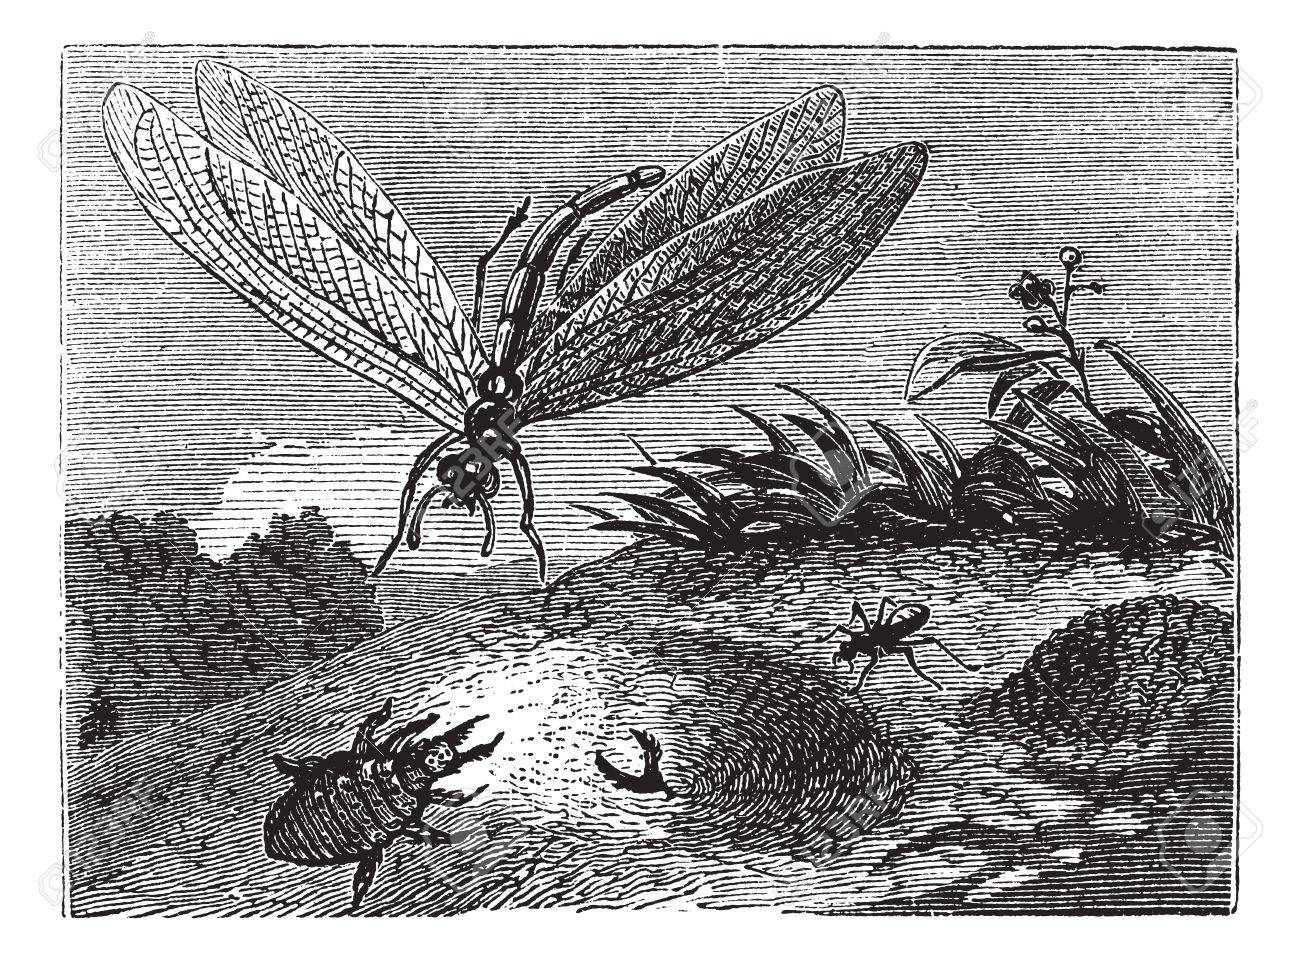 Antlion or Myrmeleontidae, vintage engraving. Old engraved illustration of an Antlion. Stock Vector - 13771544